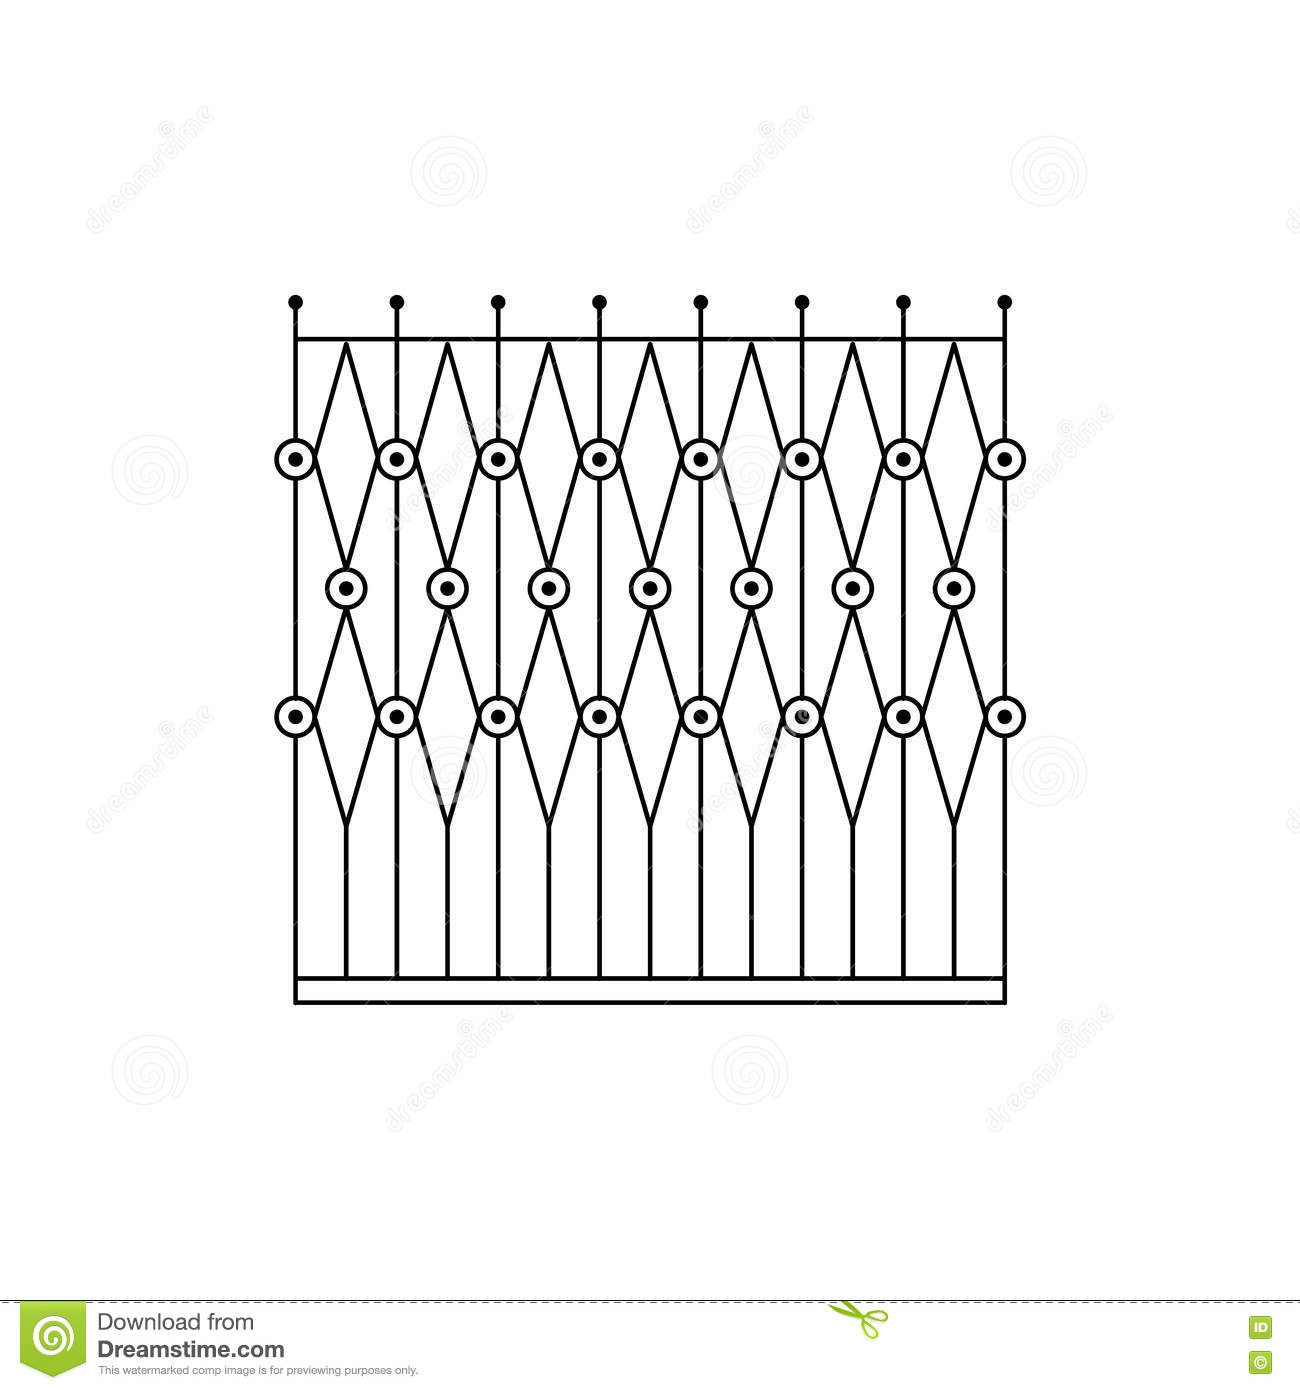 Geometric Grid Fencing Design Stock Vector - Illustration of ...